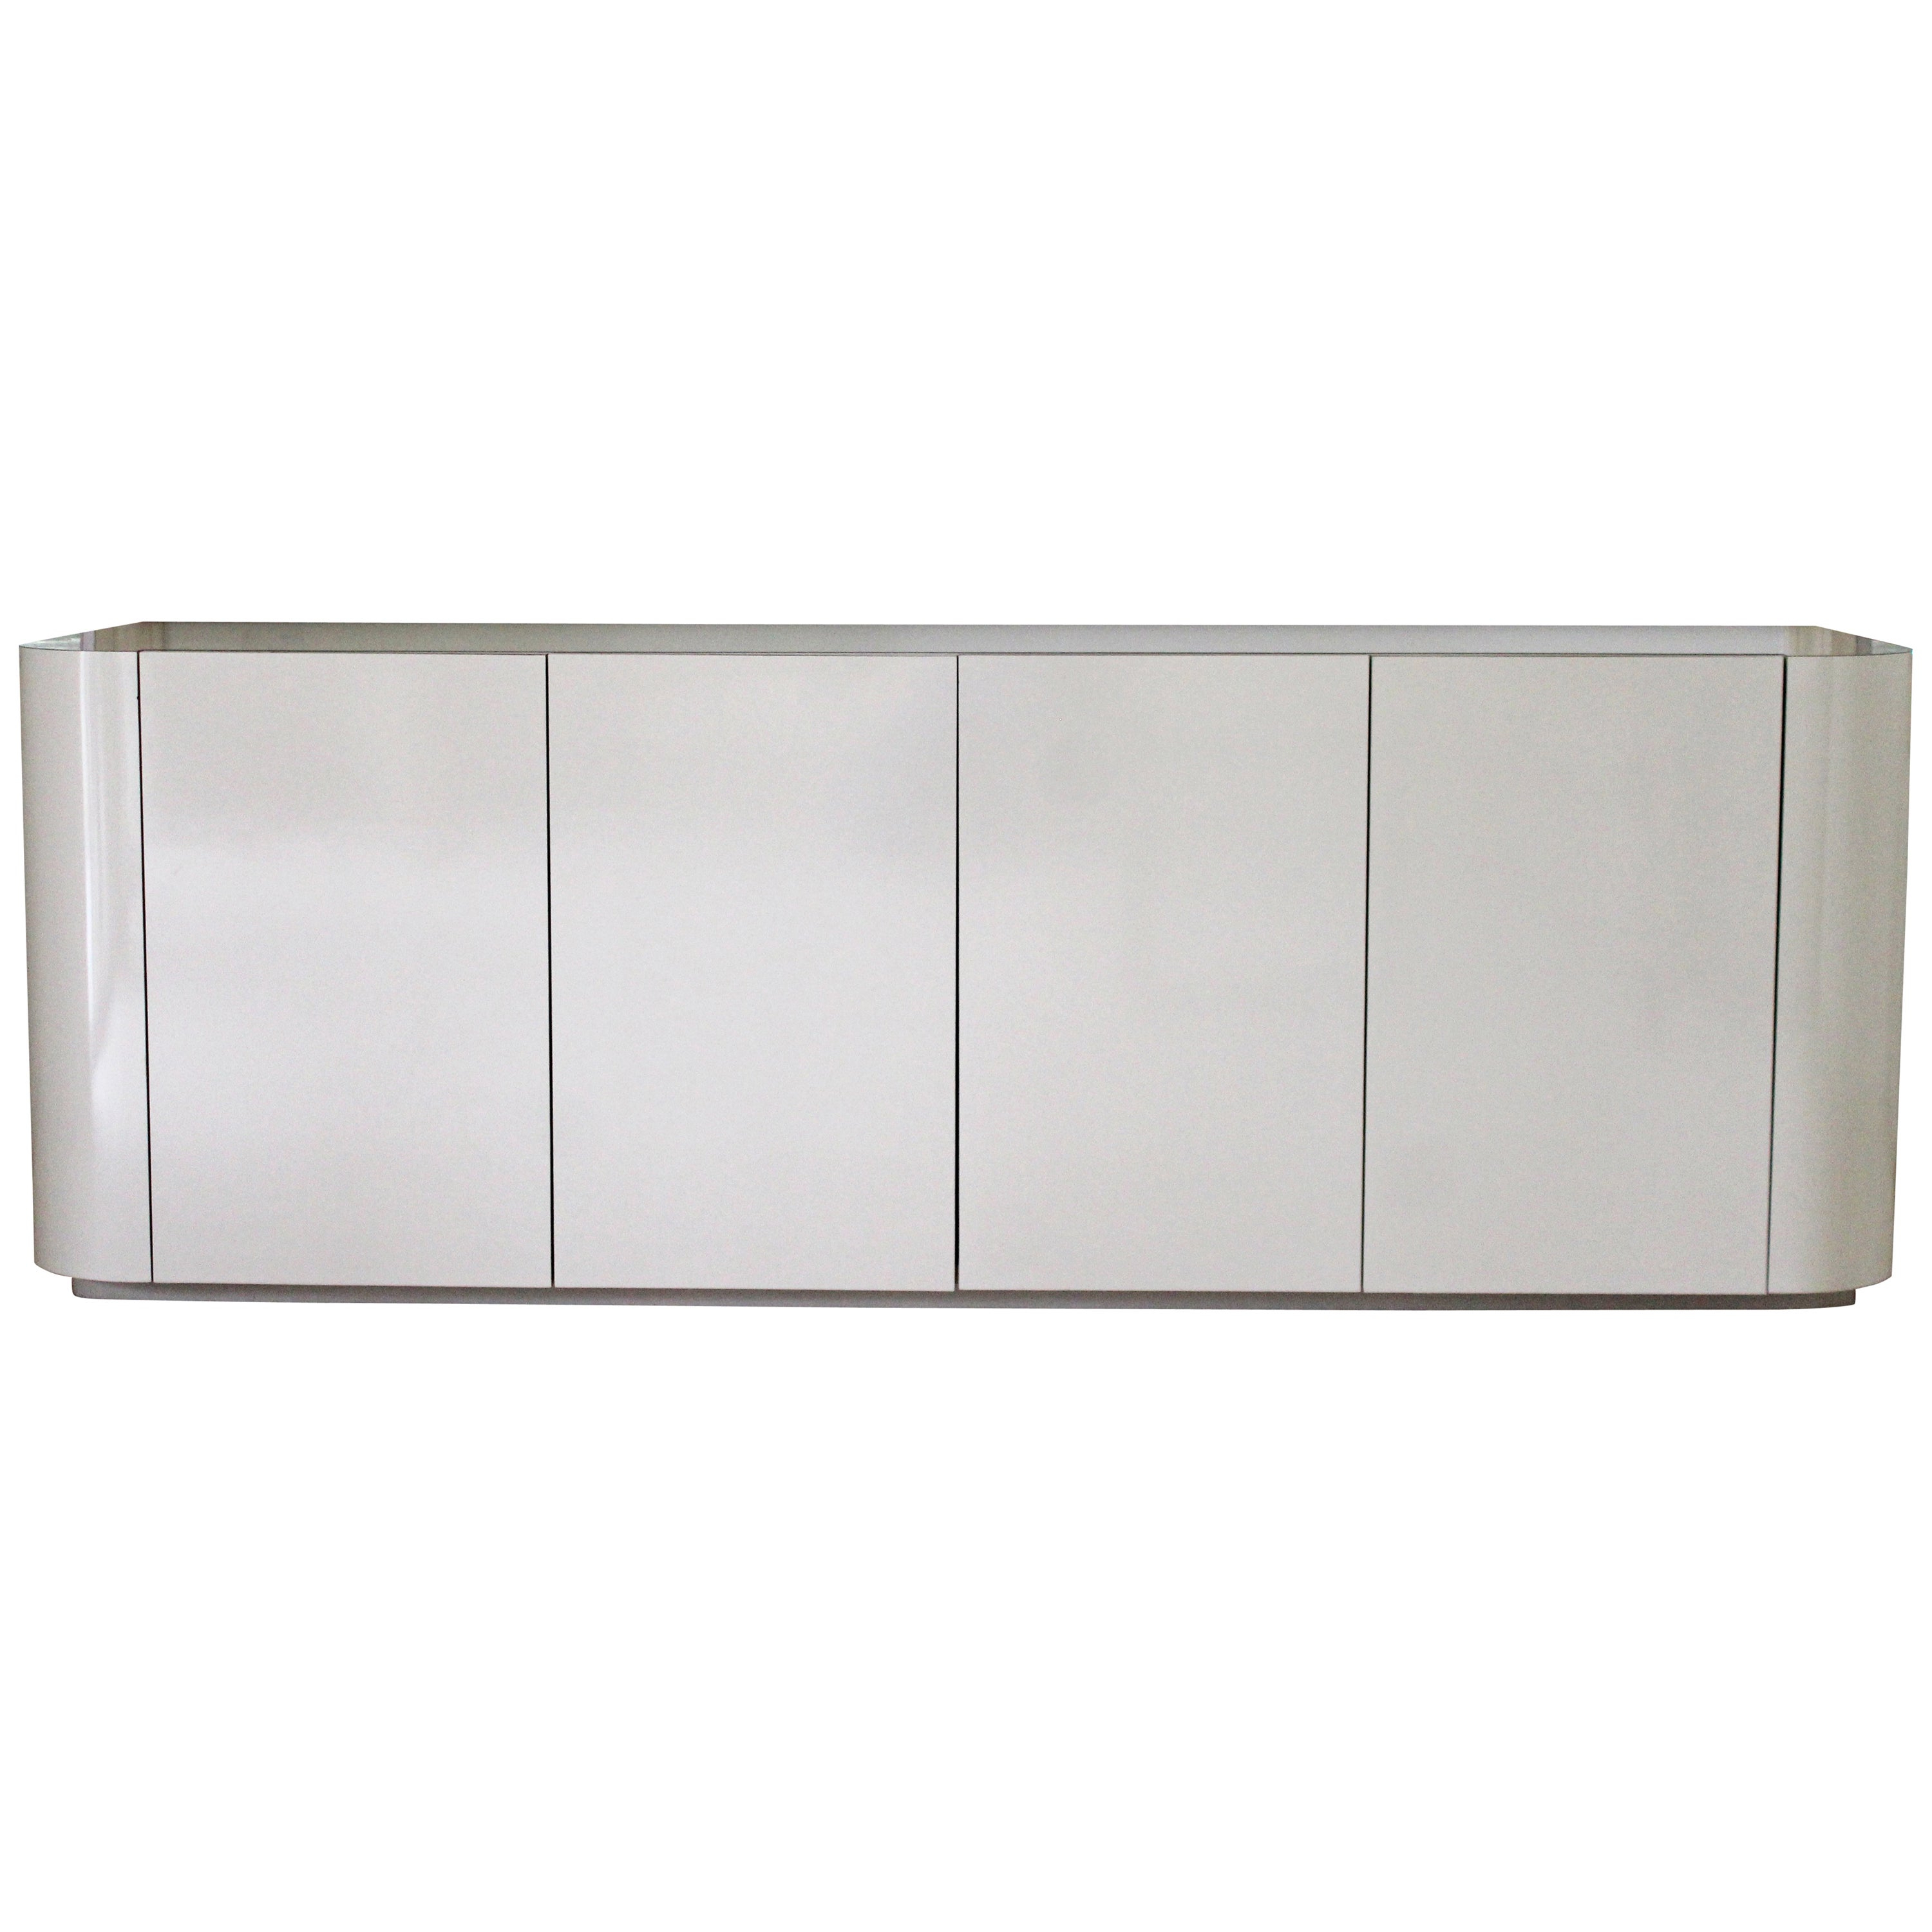 Abhinav Credenzas Pertaining To Current White Credenza Cabinet (Gallery 20 of 20)